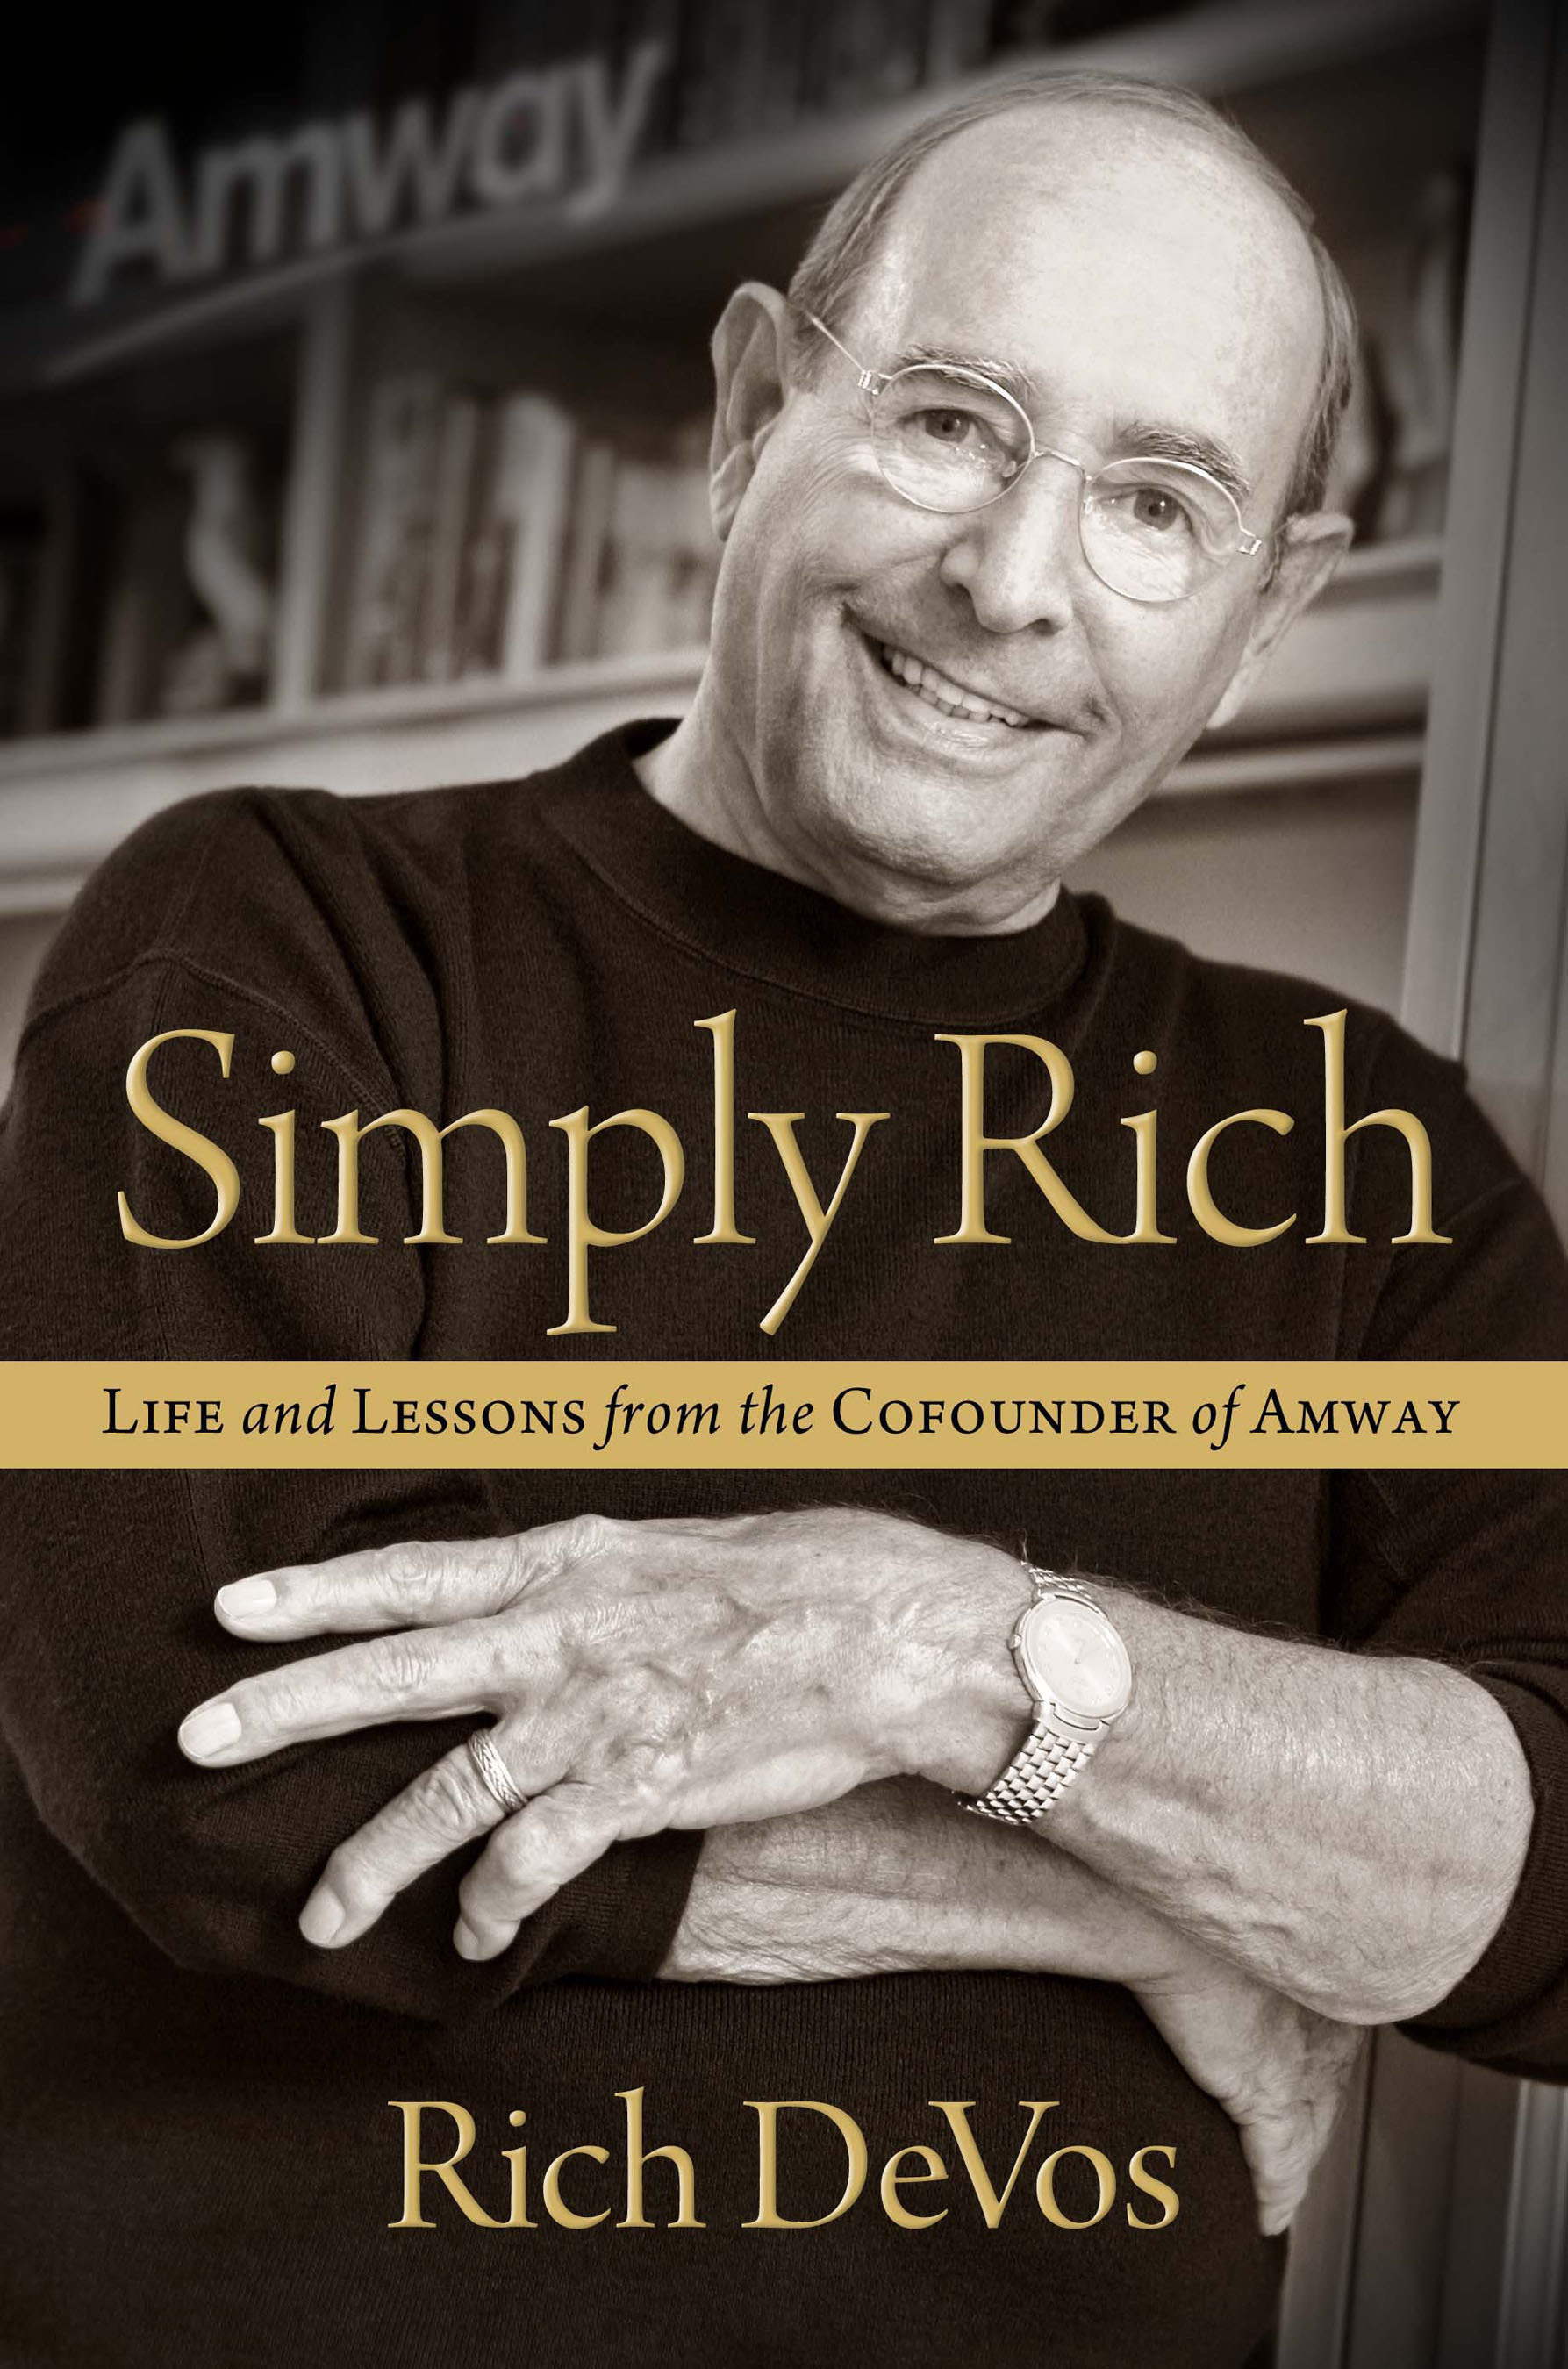 'Simply Rich: Life and Lessons from the Cofounder of Amway' is Released